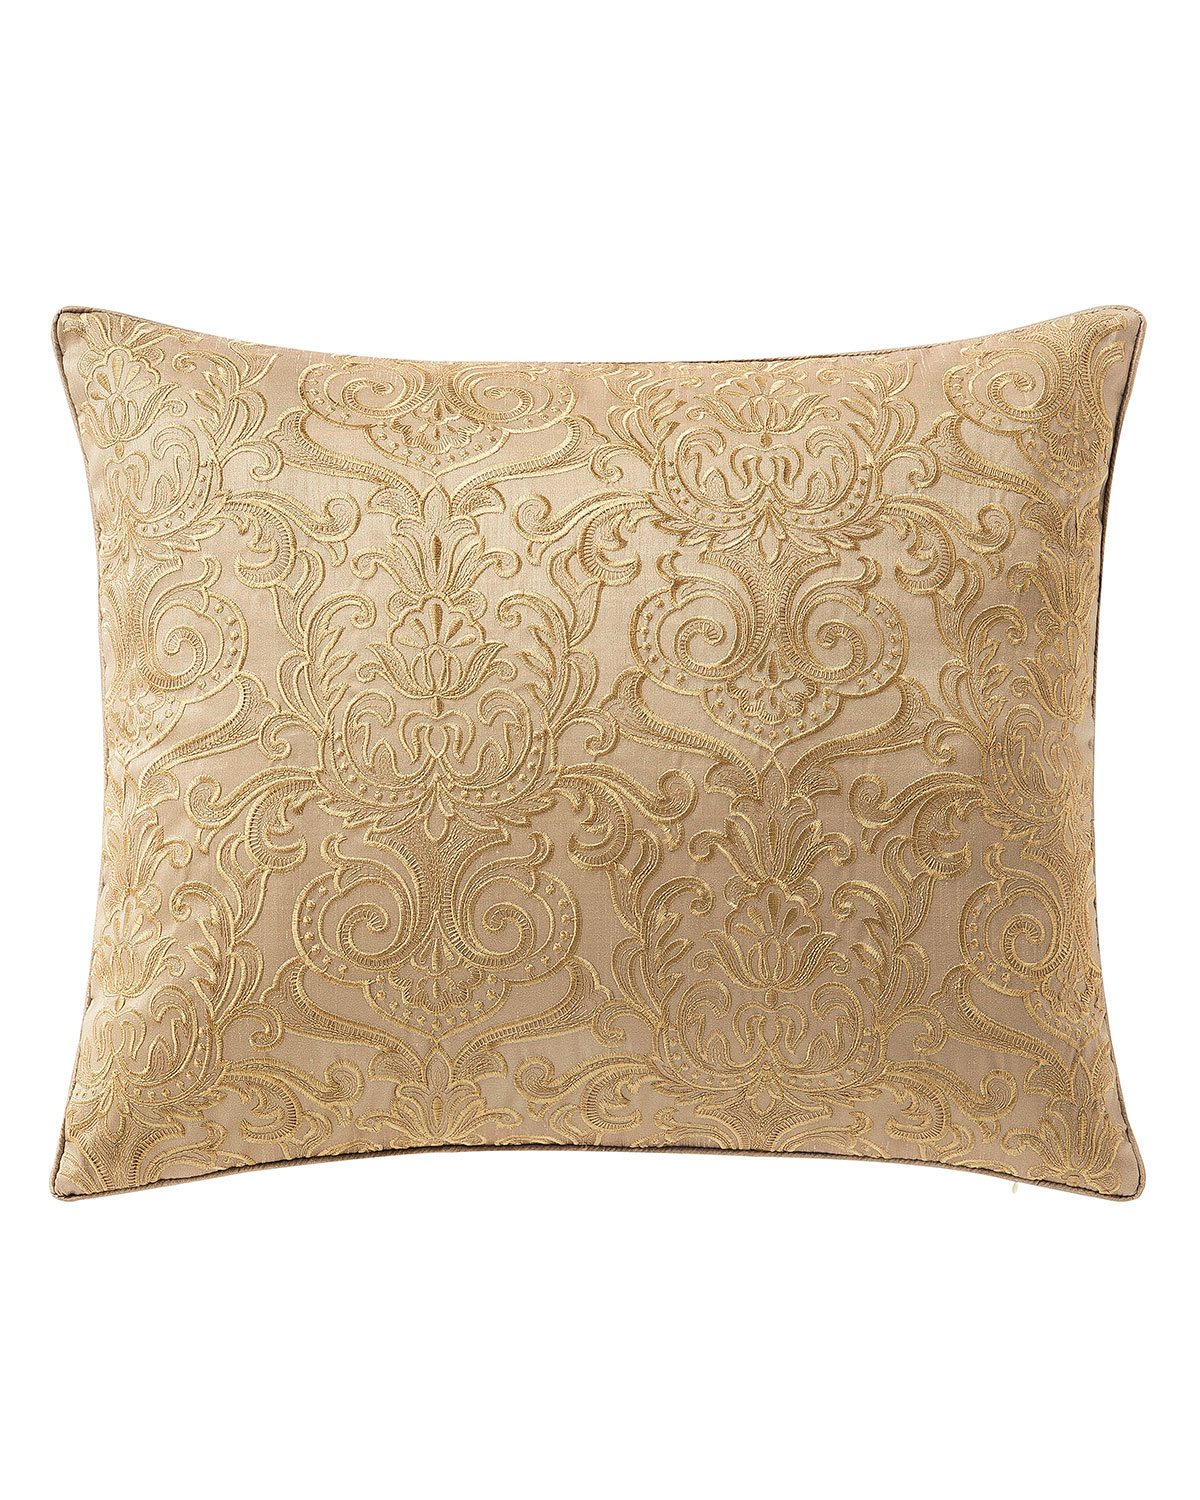 Waterford Leighton Decorative Pillow 16 Quot X 20 Quot